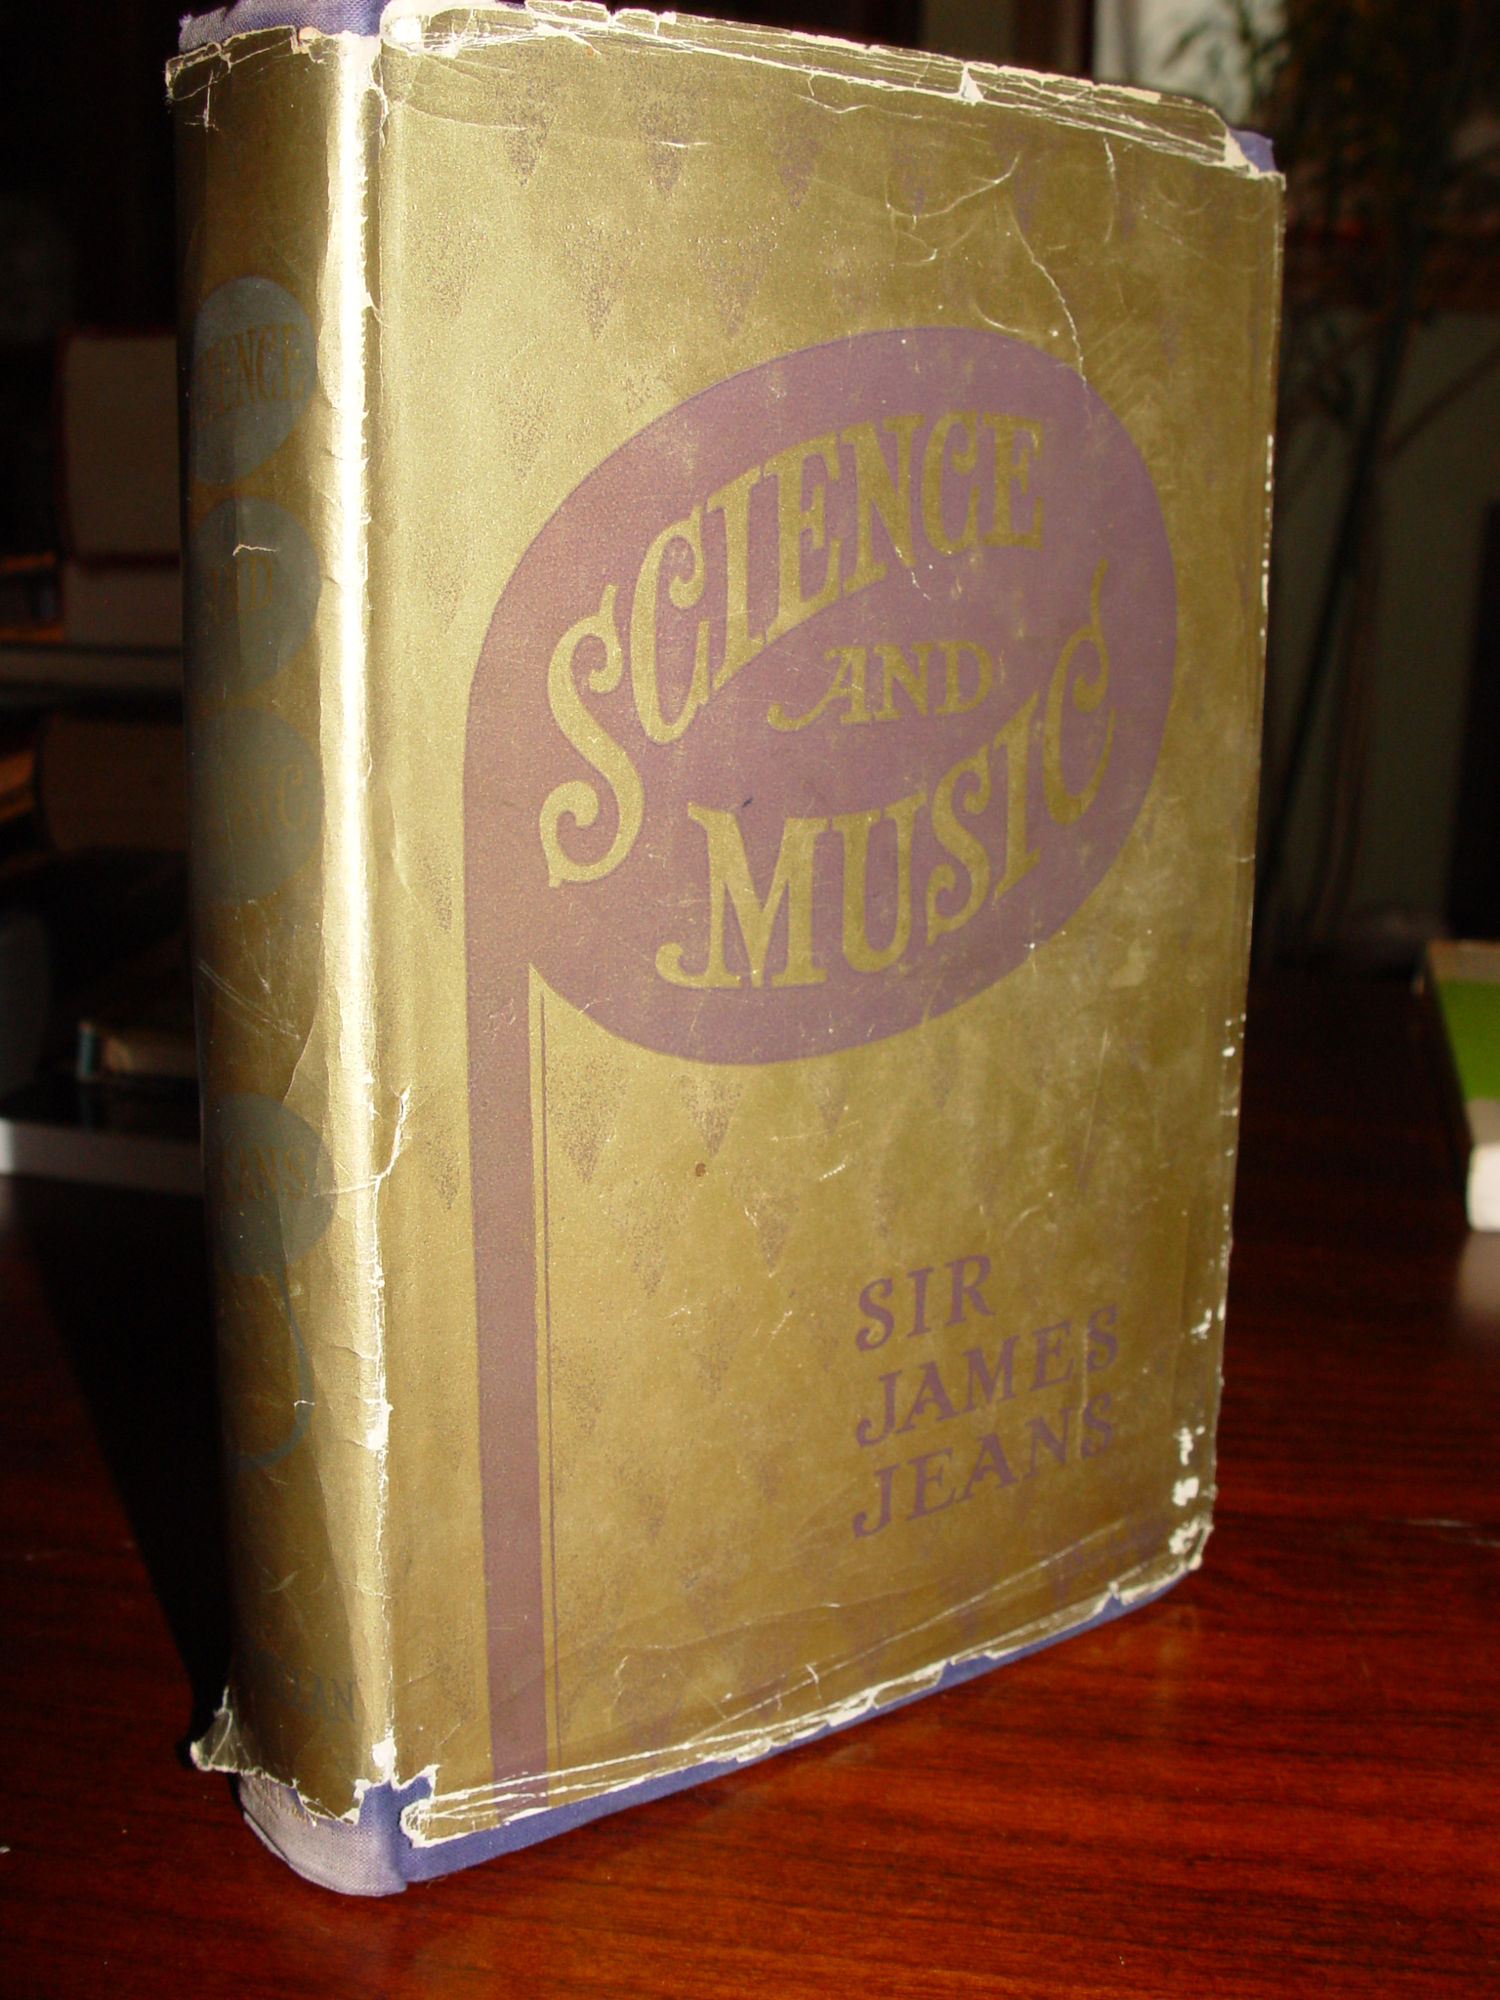 Arc Welding Lessons for                                         School and Farm Shop JAMES                                         LINCOLN 1952